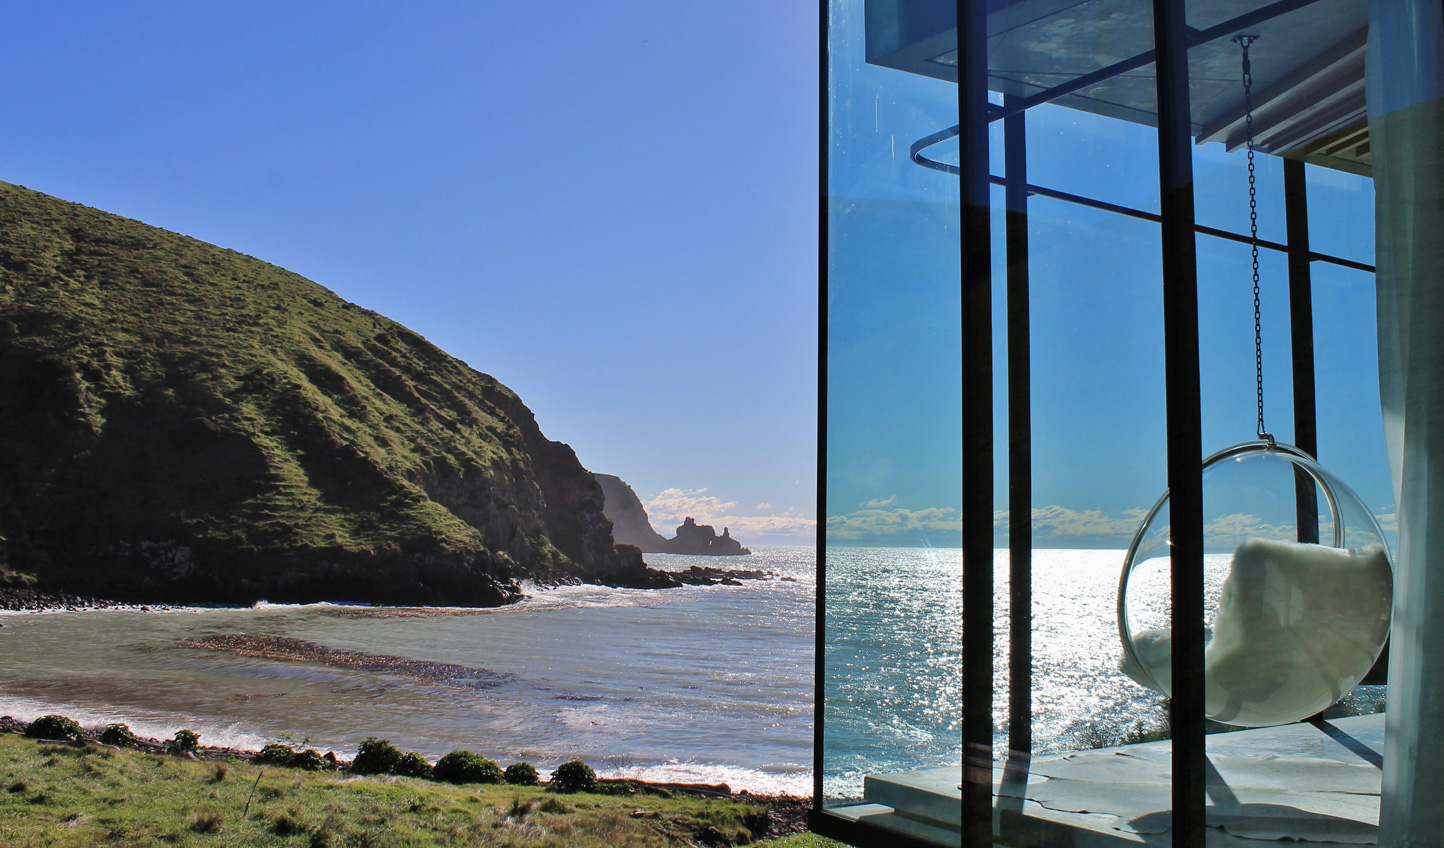 Seascape Annandale Luxury Holidays In New Zealand